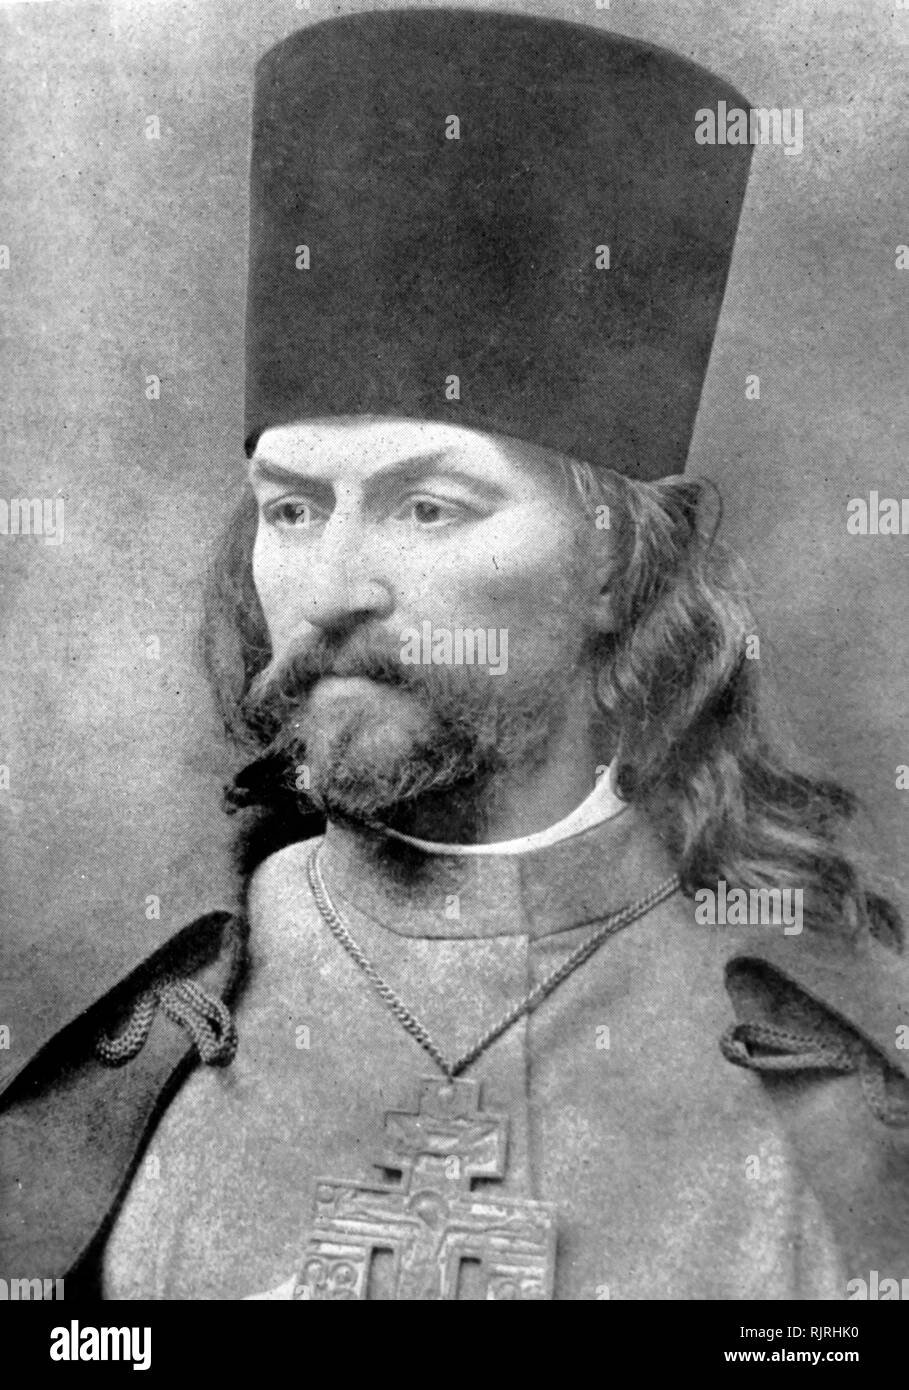 Father Georgy Apollonovich Gapon (1870 -- 1906); Russian Orthodox priest and working class leader before the Russian Revolution of 1905. After he was discovered to be a police informant, Gapon was murdered by members of the Socialist Revolutionary Party. - Stock Image